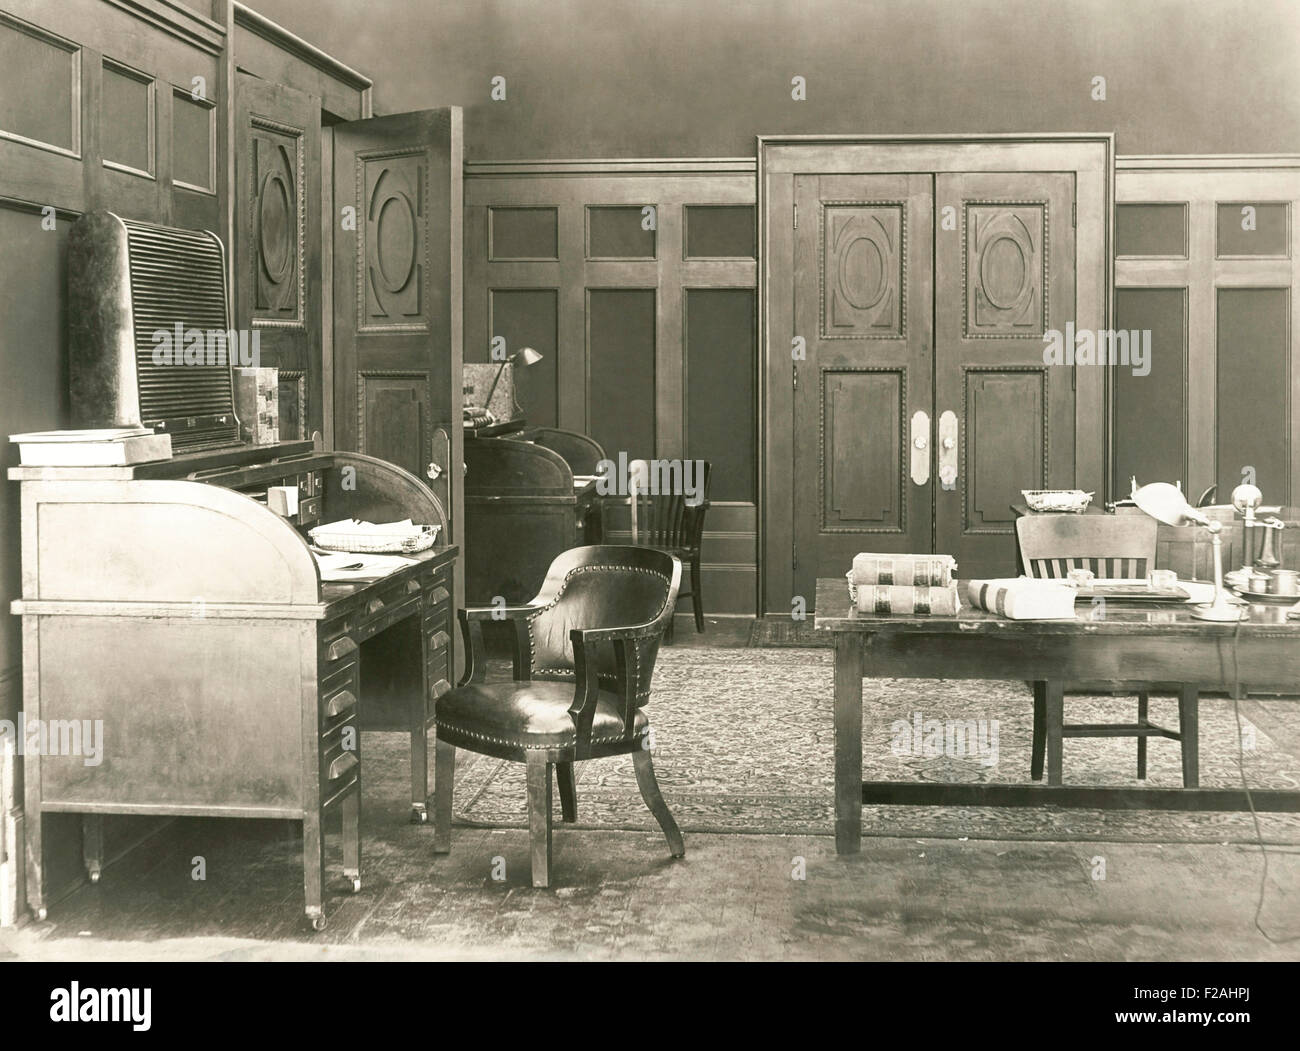 Vintage Interior 1920s High Resolution Stock Photography And Images Alamy